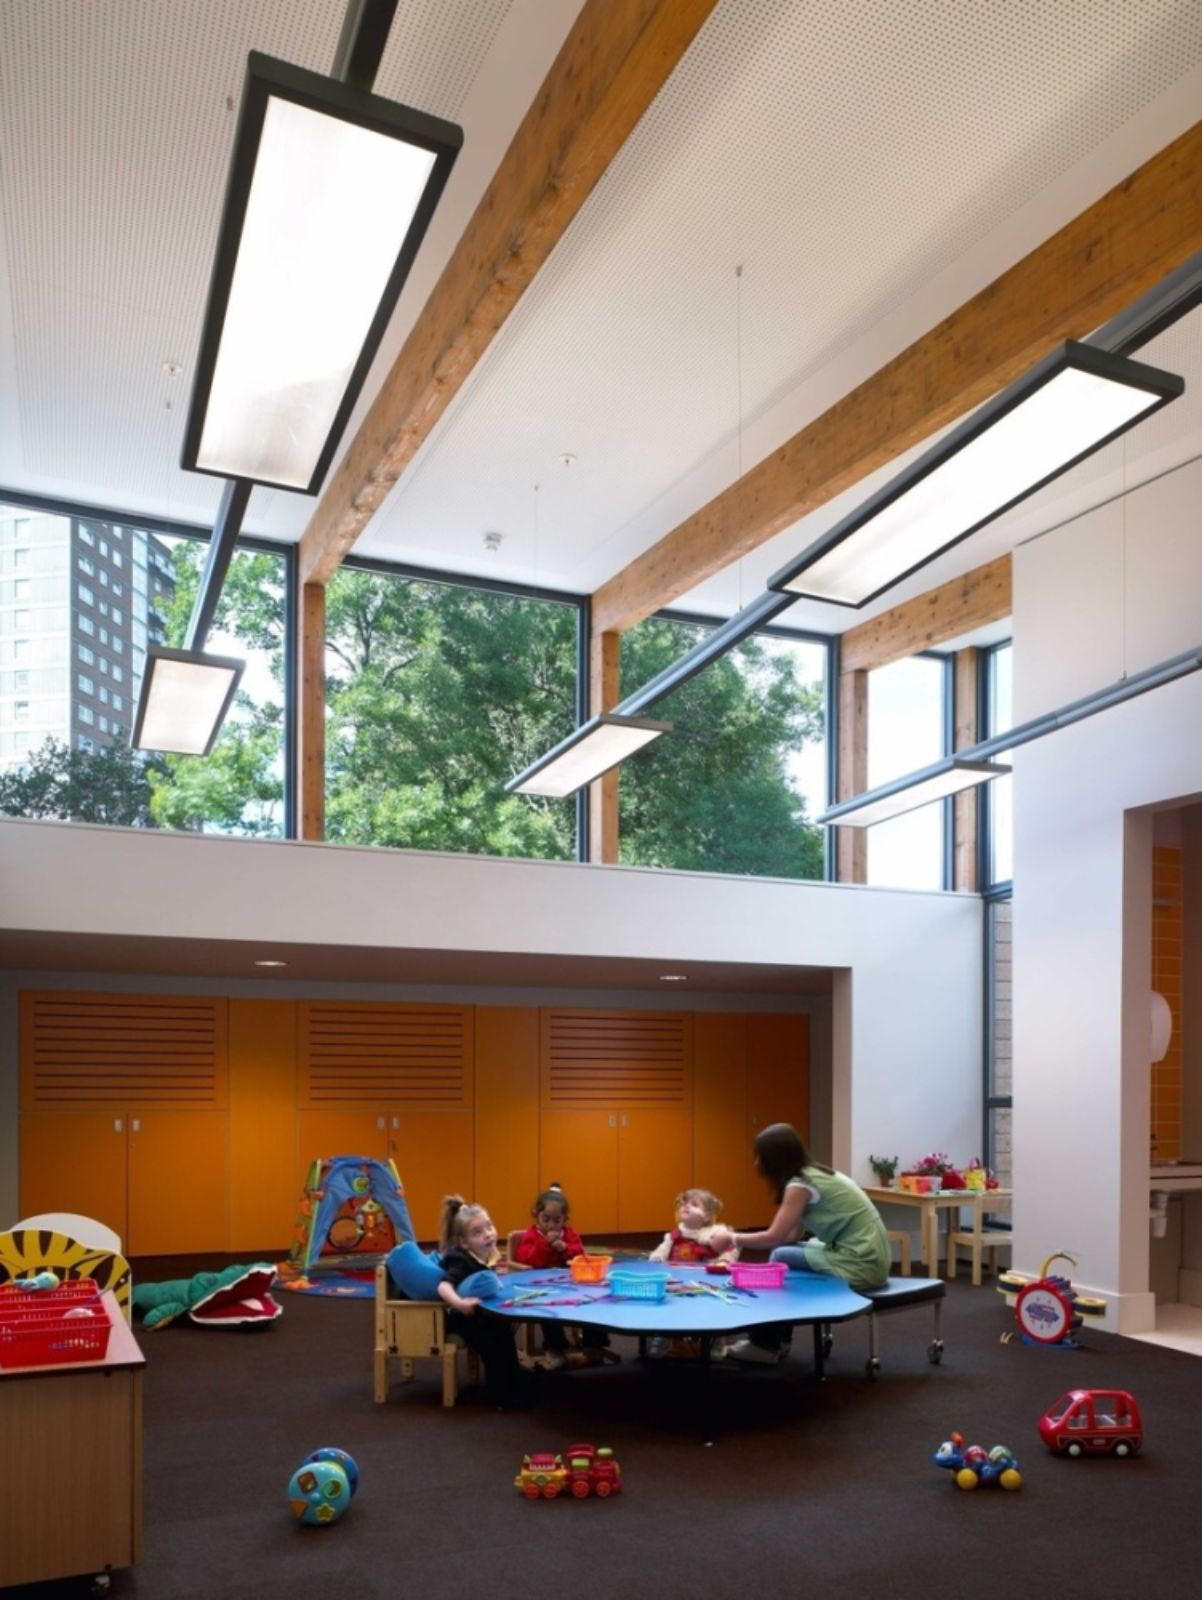 Hazelwood school glasgow by alan dunlop architect 10 for Ecole architecture interieur